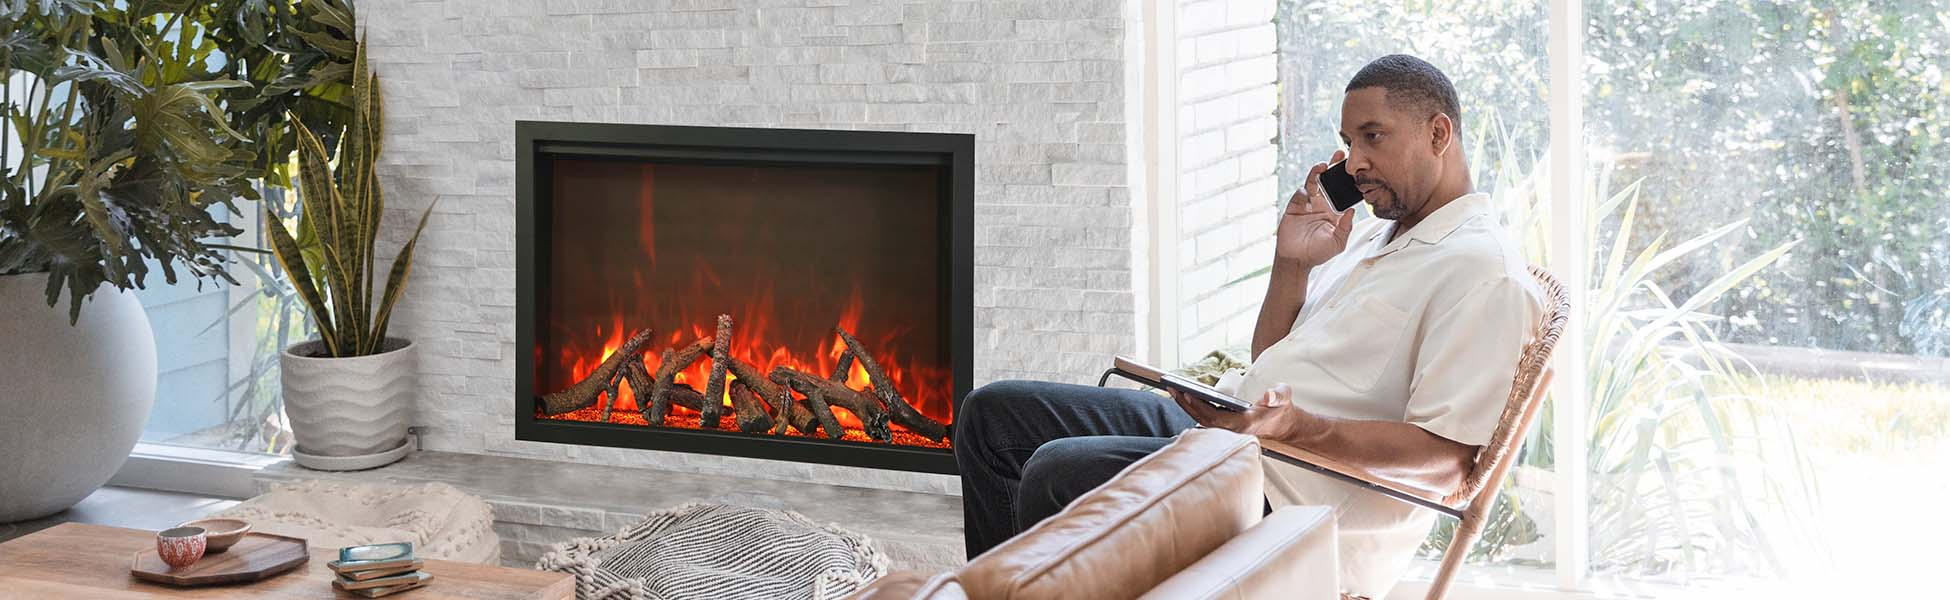 TRD Electric Fireplace by Amantii